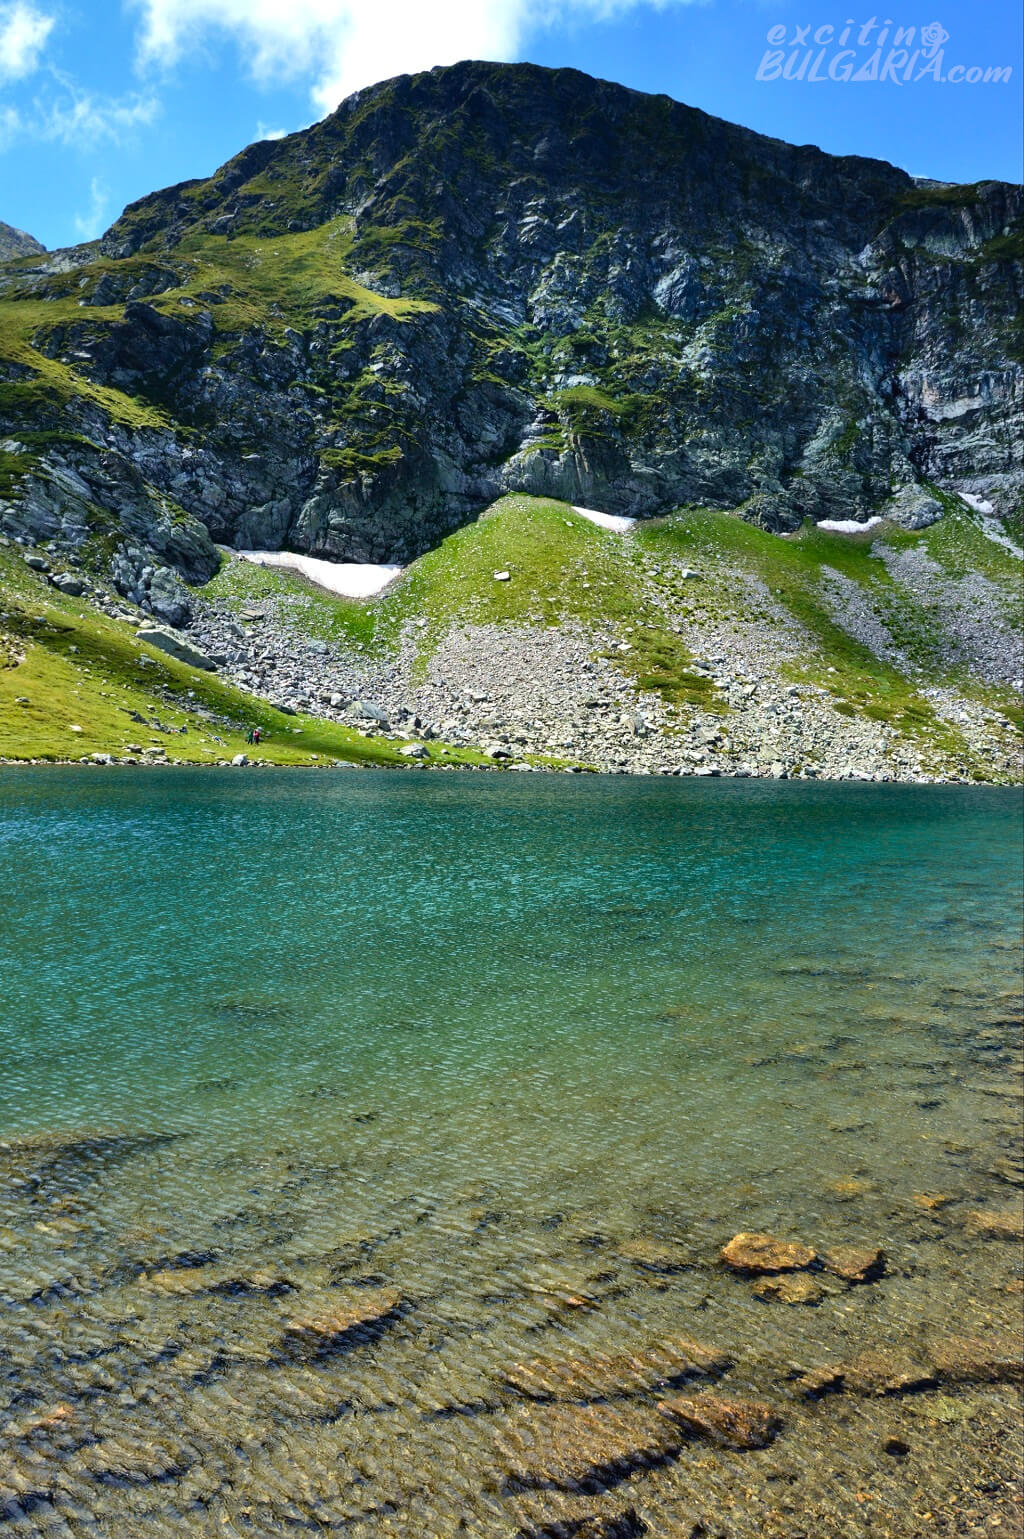 The Kidney lake in the Rila Mountains